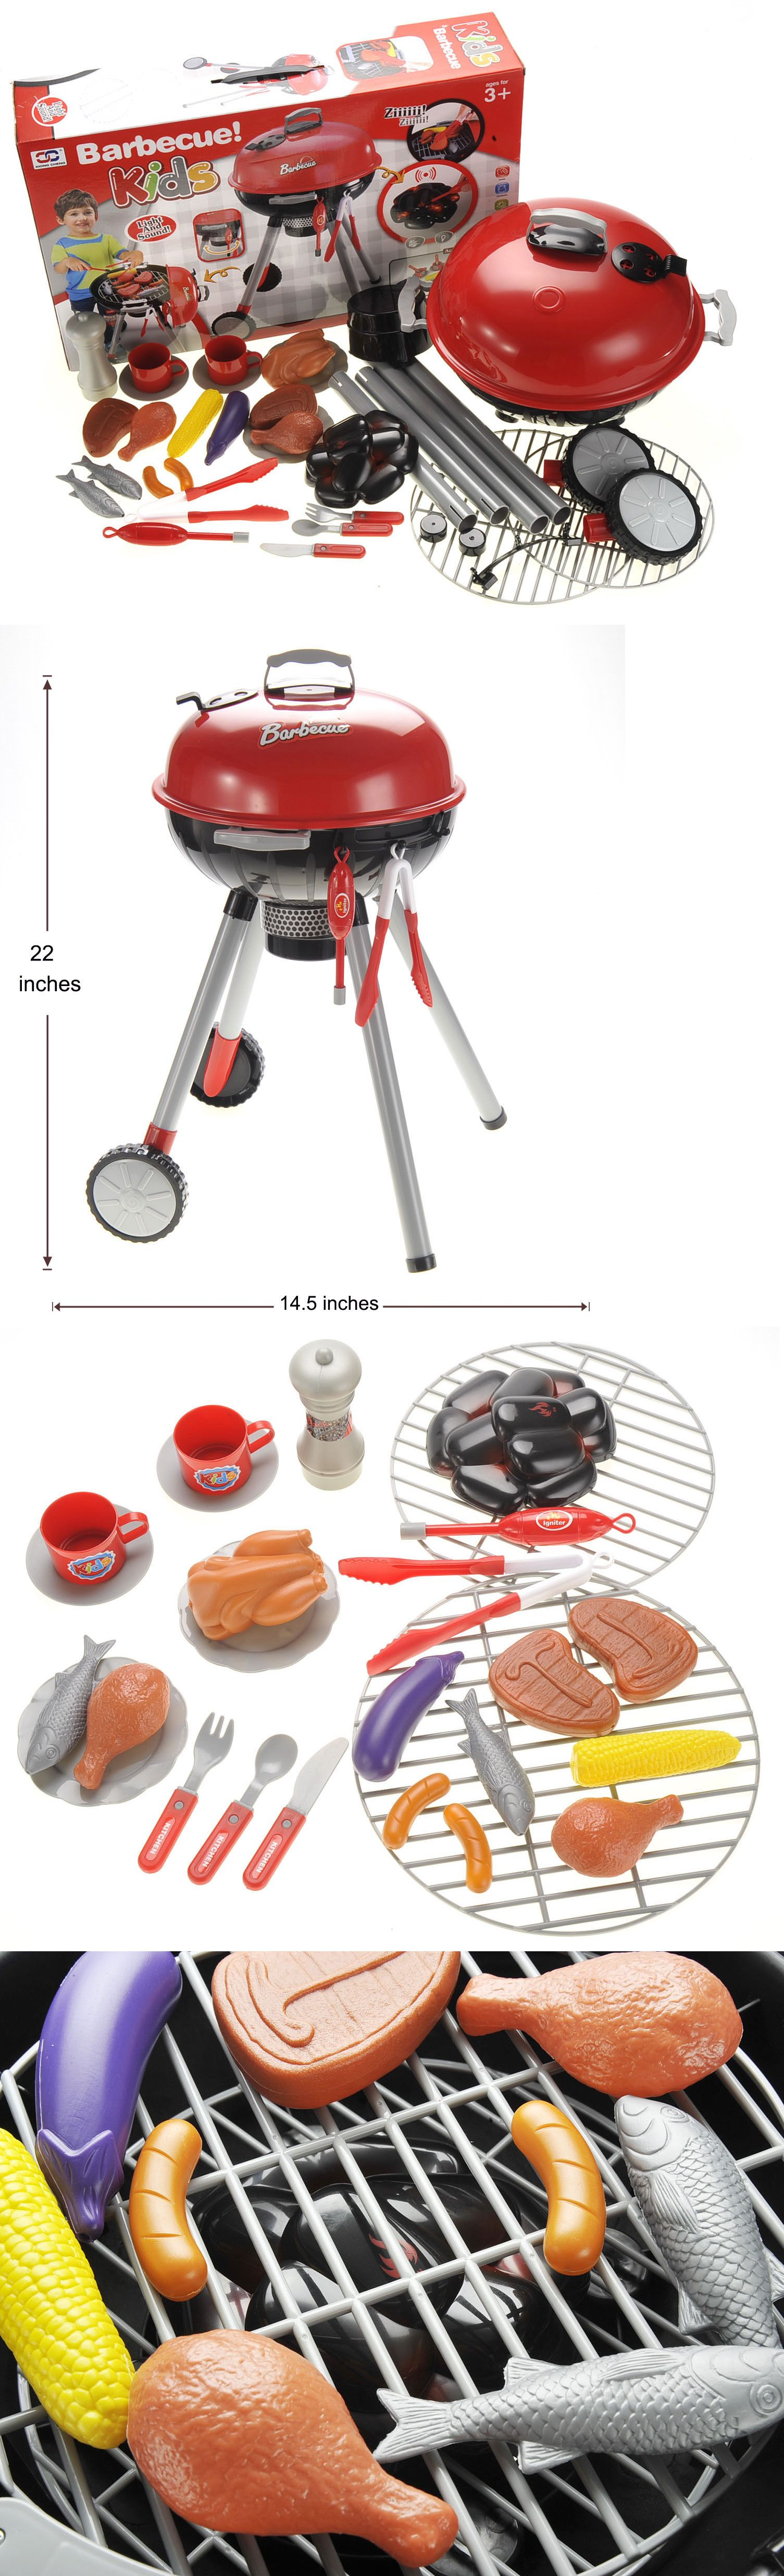 Child Size 2574 Bbq Grill Playset Toy It Now Only 35 On Ebay